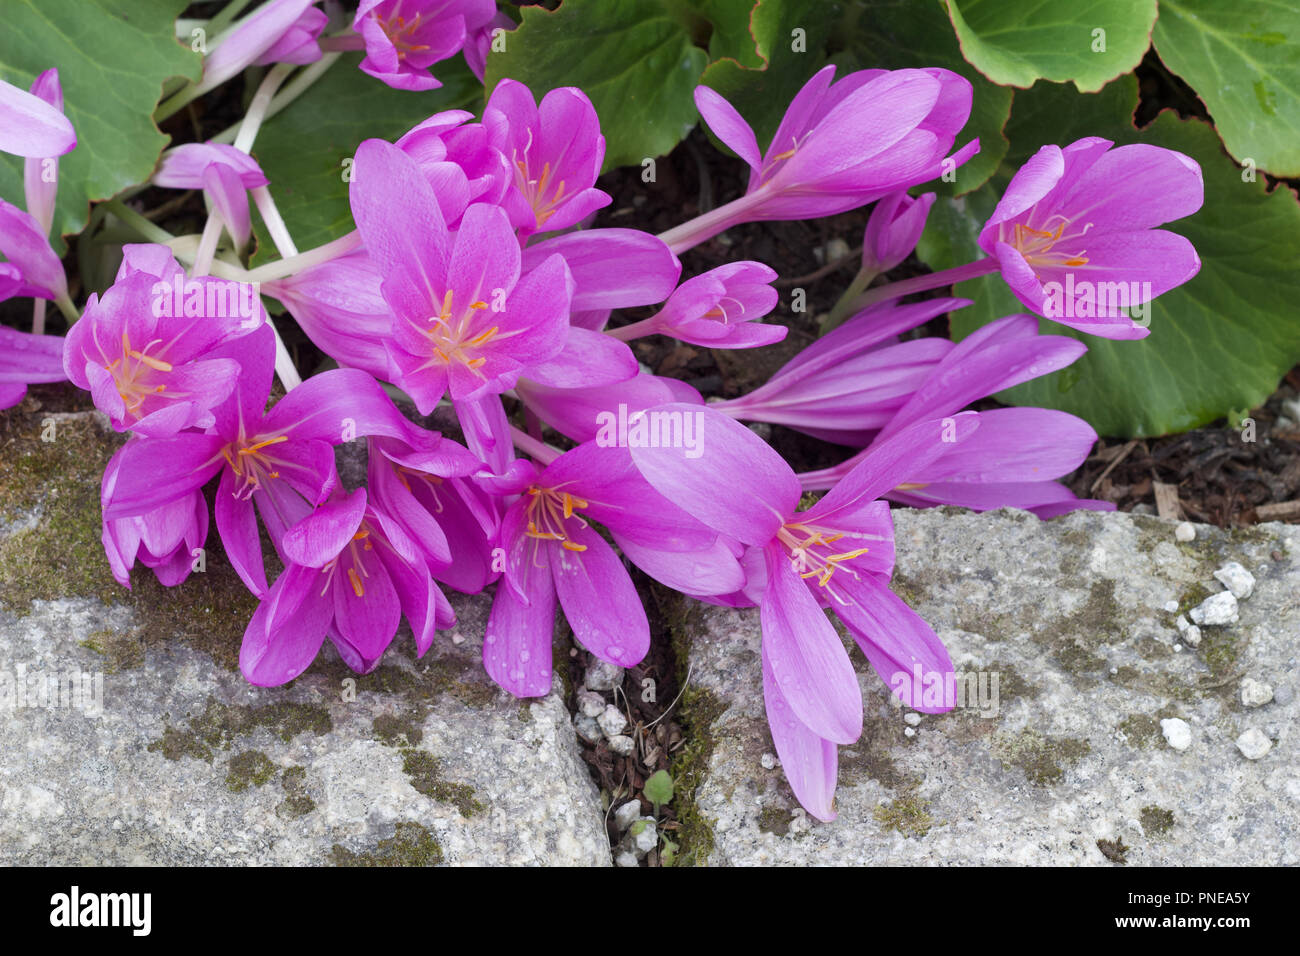 Close Up Of Beautiful Pink Color Crocus Like Flowers Growing Low To